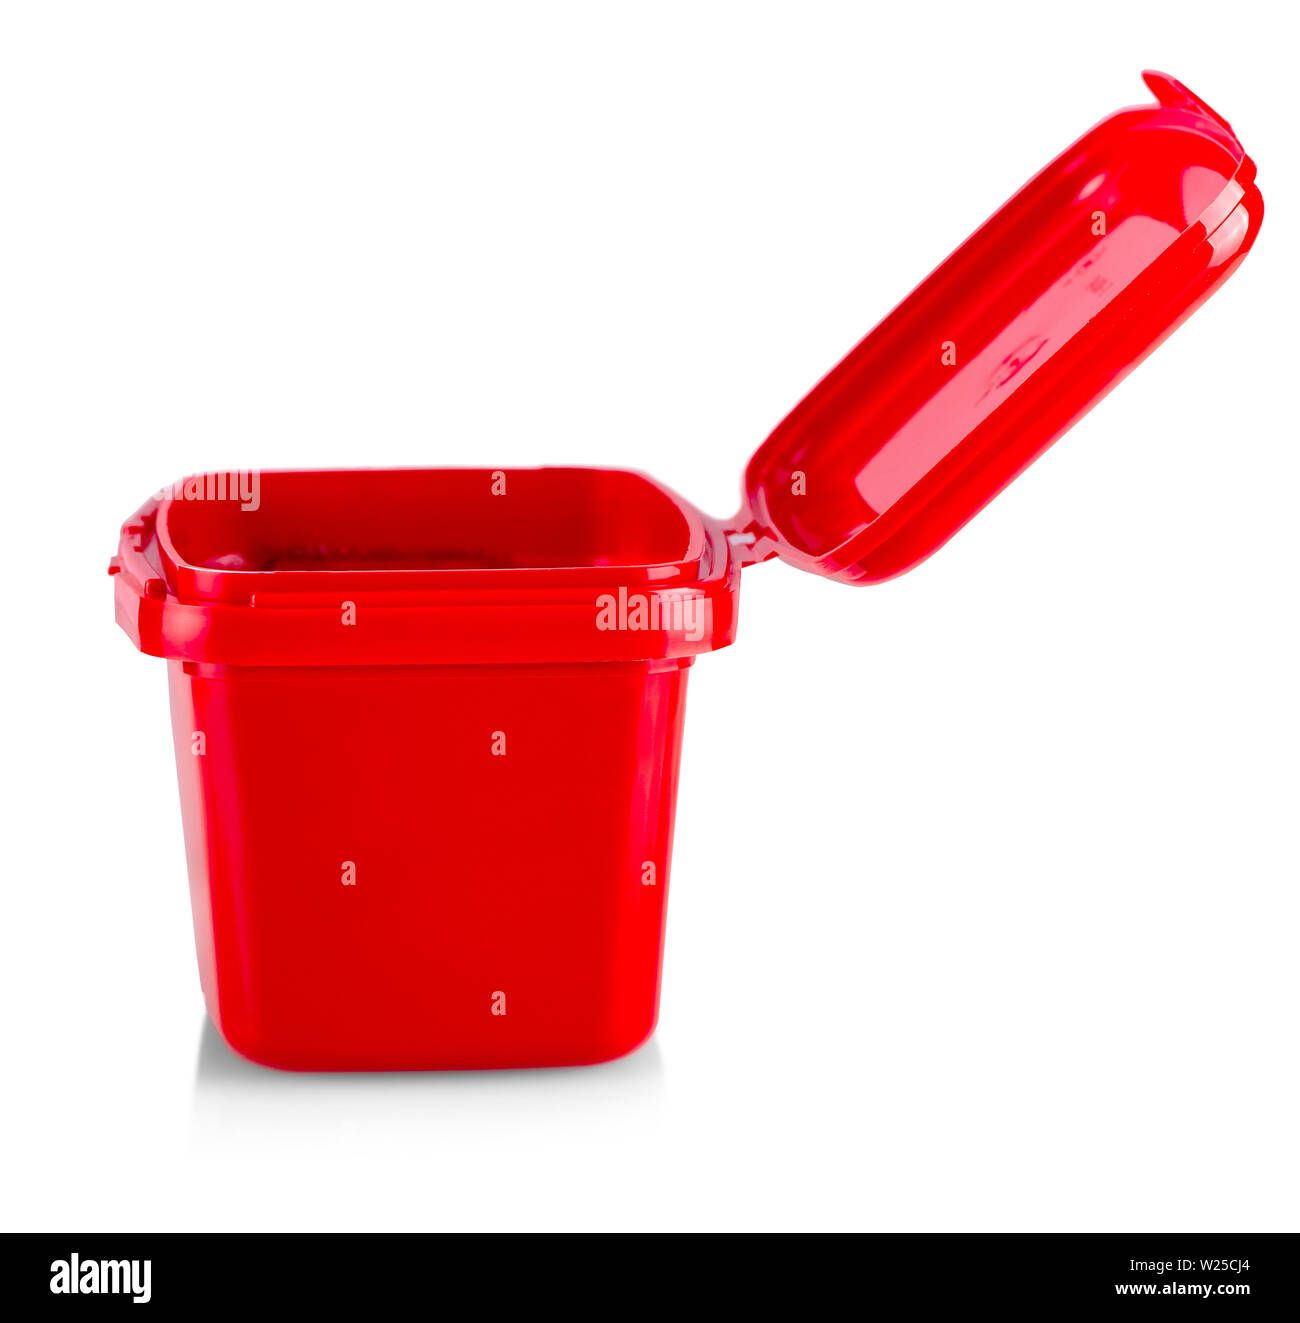 Plastic red box on a white background - Stock Image